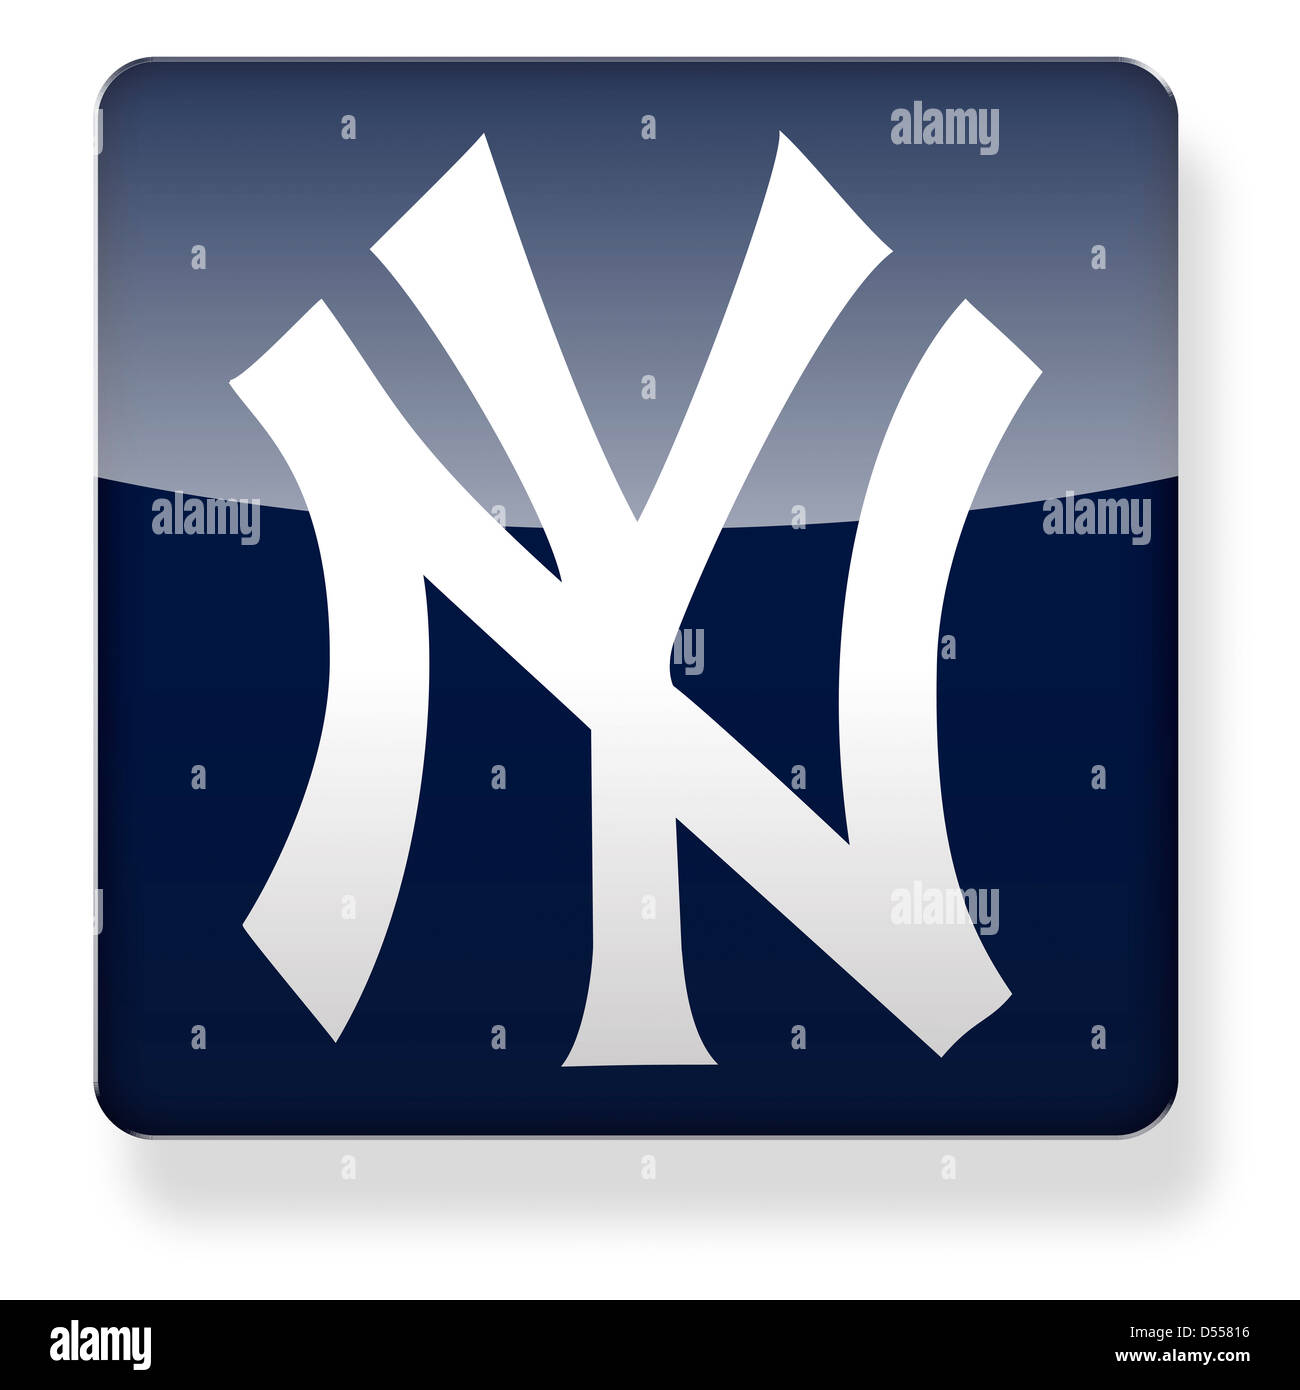 New York Yankees Baseball Cap Logo As An App Icon Clipping Path Included